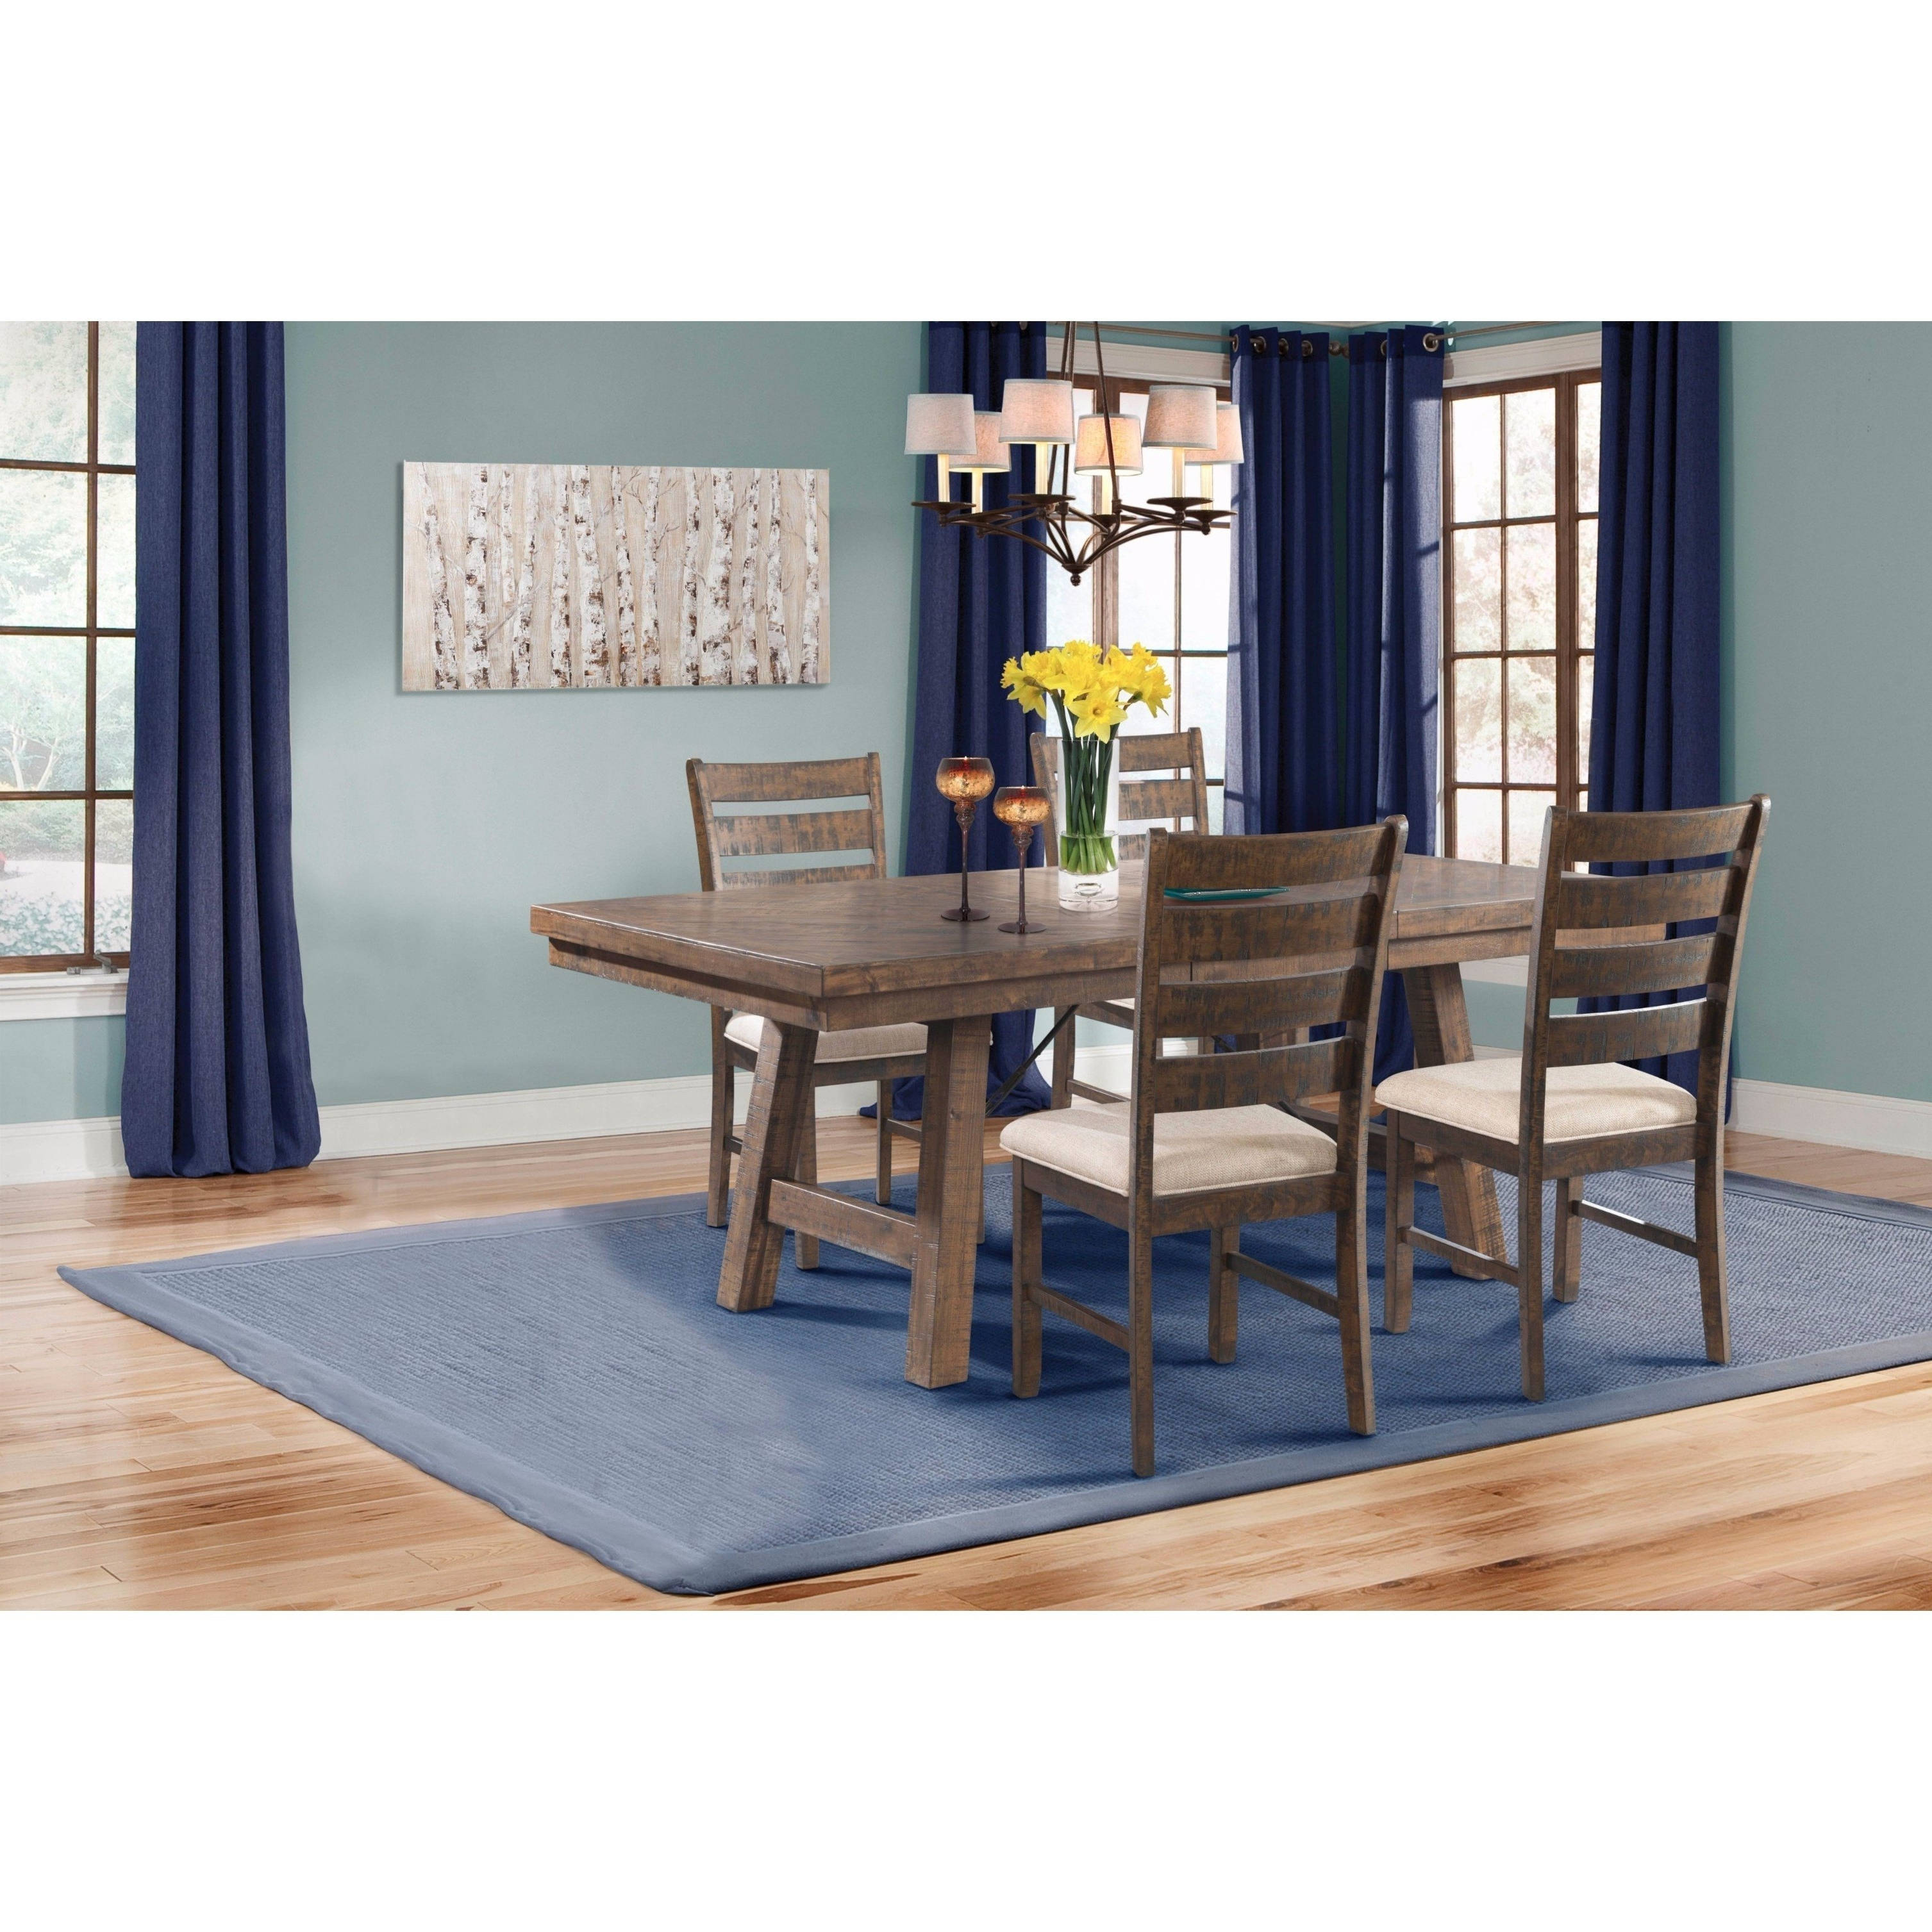 Shop Picket House Furnishings Dex 5Pc Dining Set Table, 4 Ladder With Regard To Famous Caden 7 Piece Dining Sets With Upholstered Side Chair (View 12 of 25)